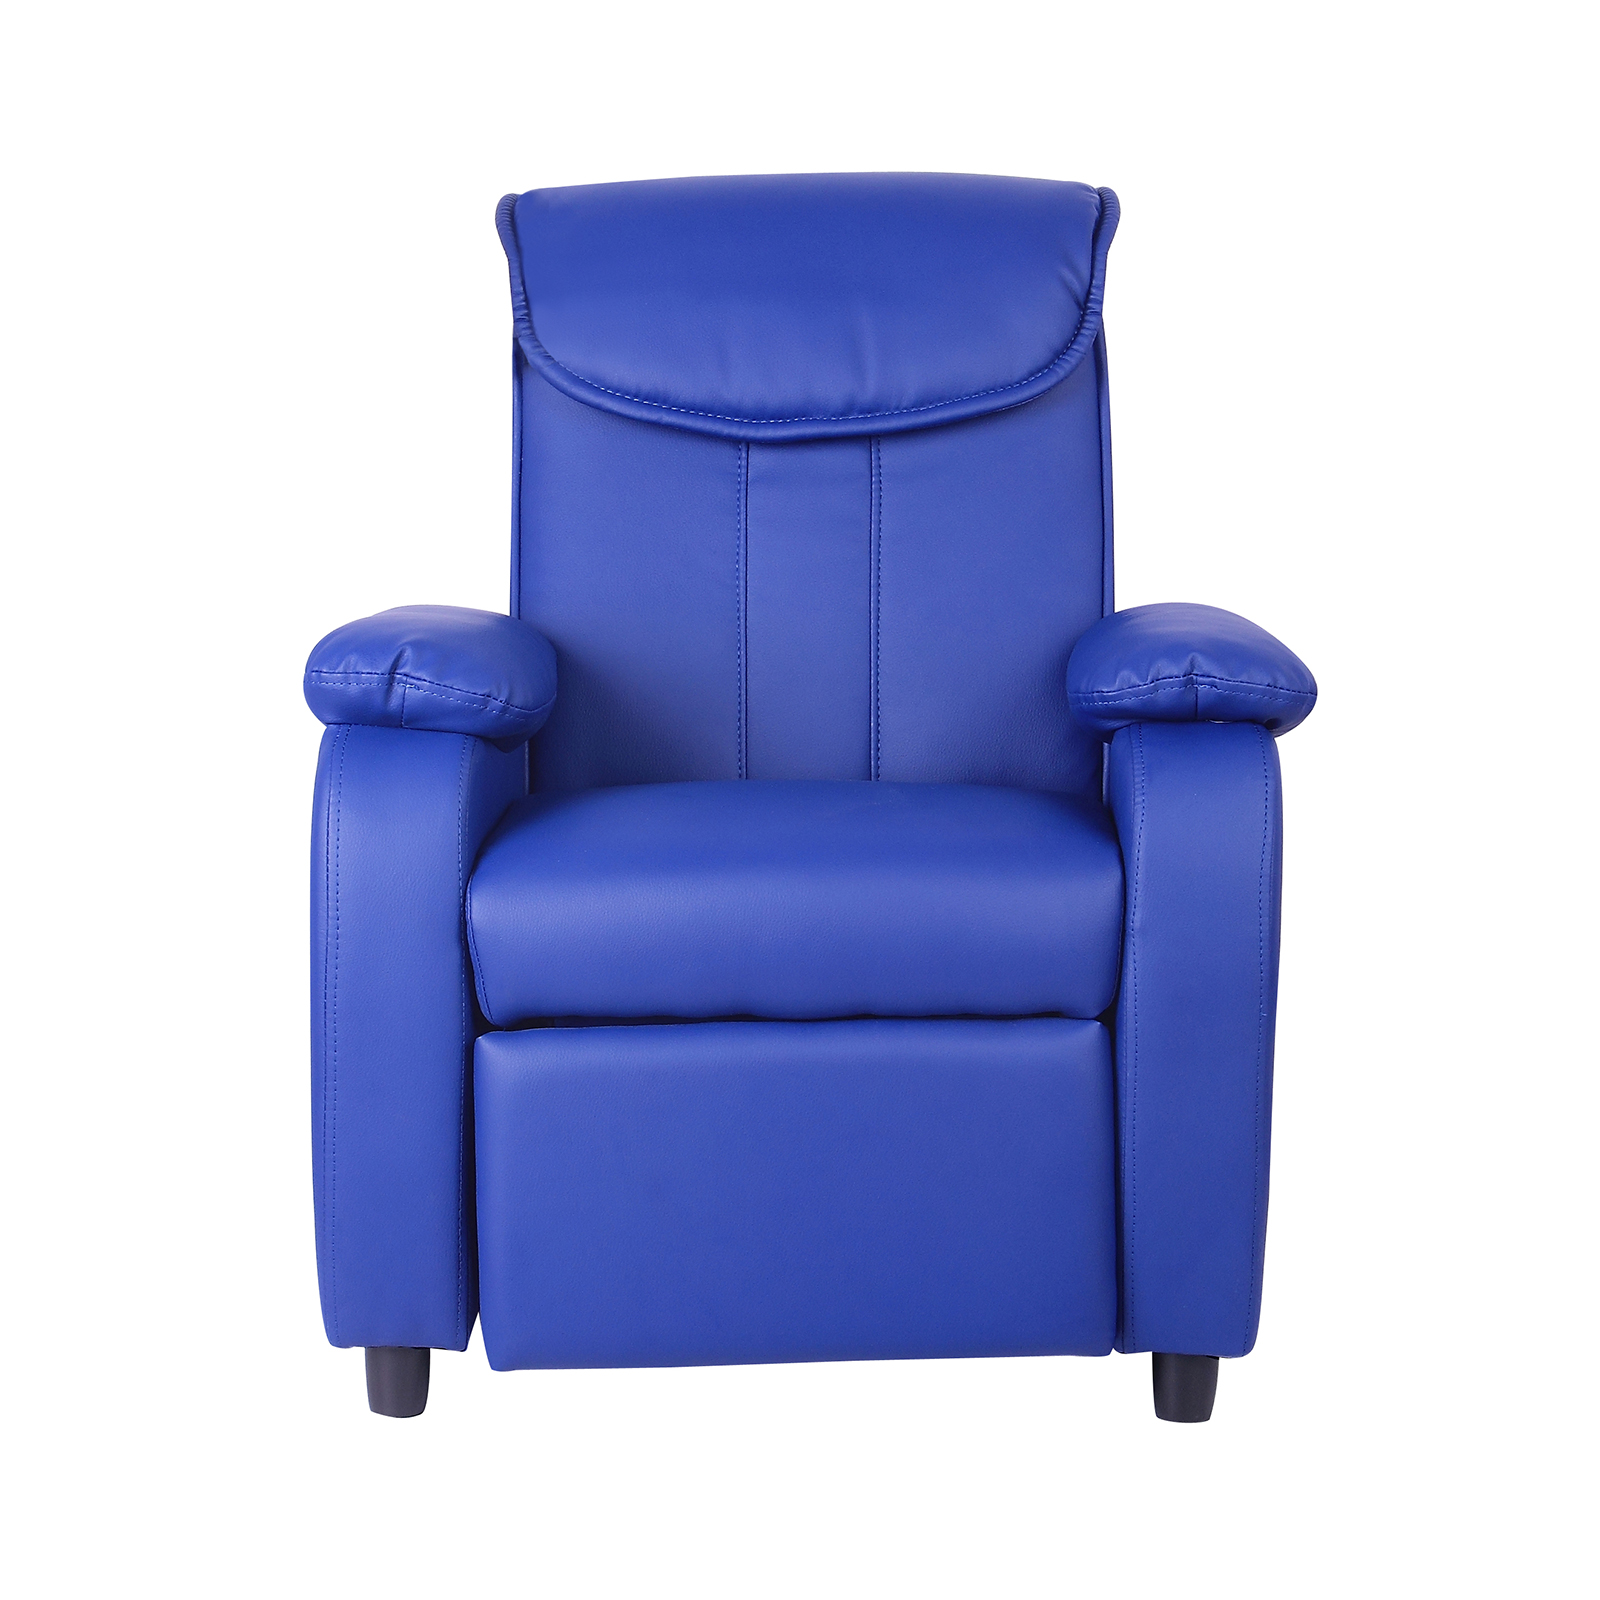 Marvelous Kids Childrens Faux Leather Padded Reclining Recliner Armchair